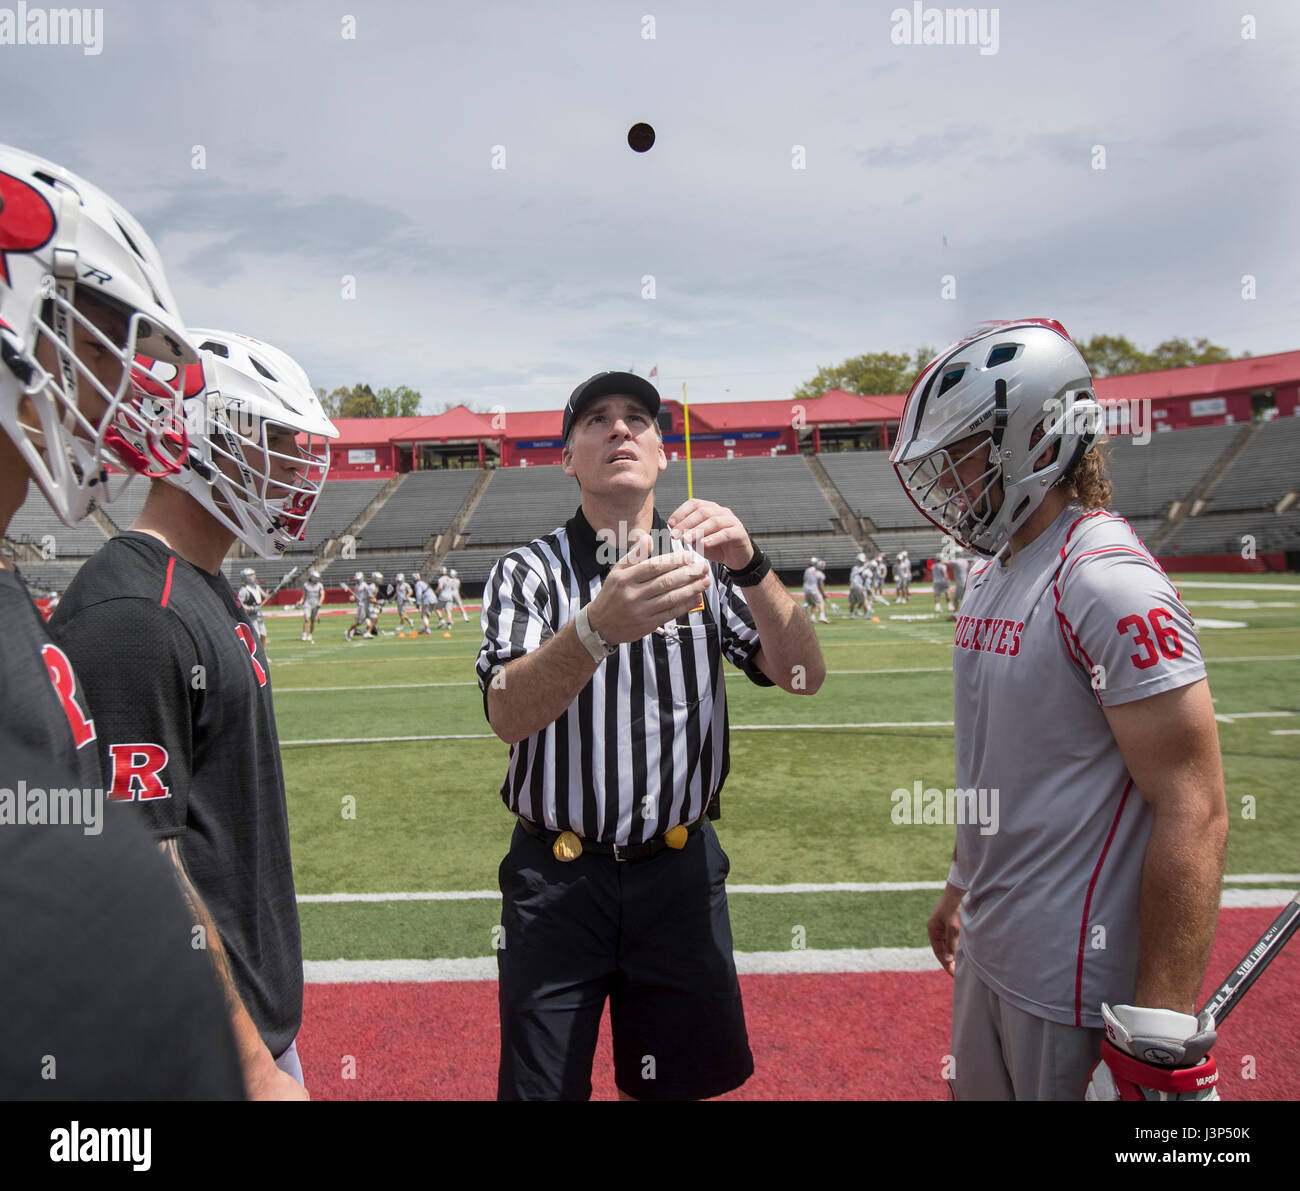 Coin toss before a lacrosse match between Ohio State and Rutgers at High Point Solutions Stadium in New Jersey - Stock Image